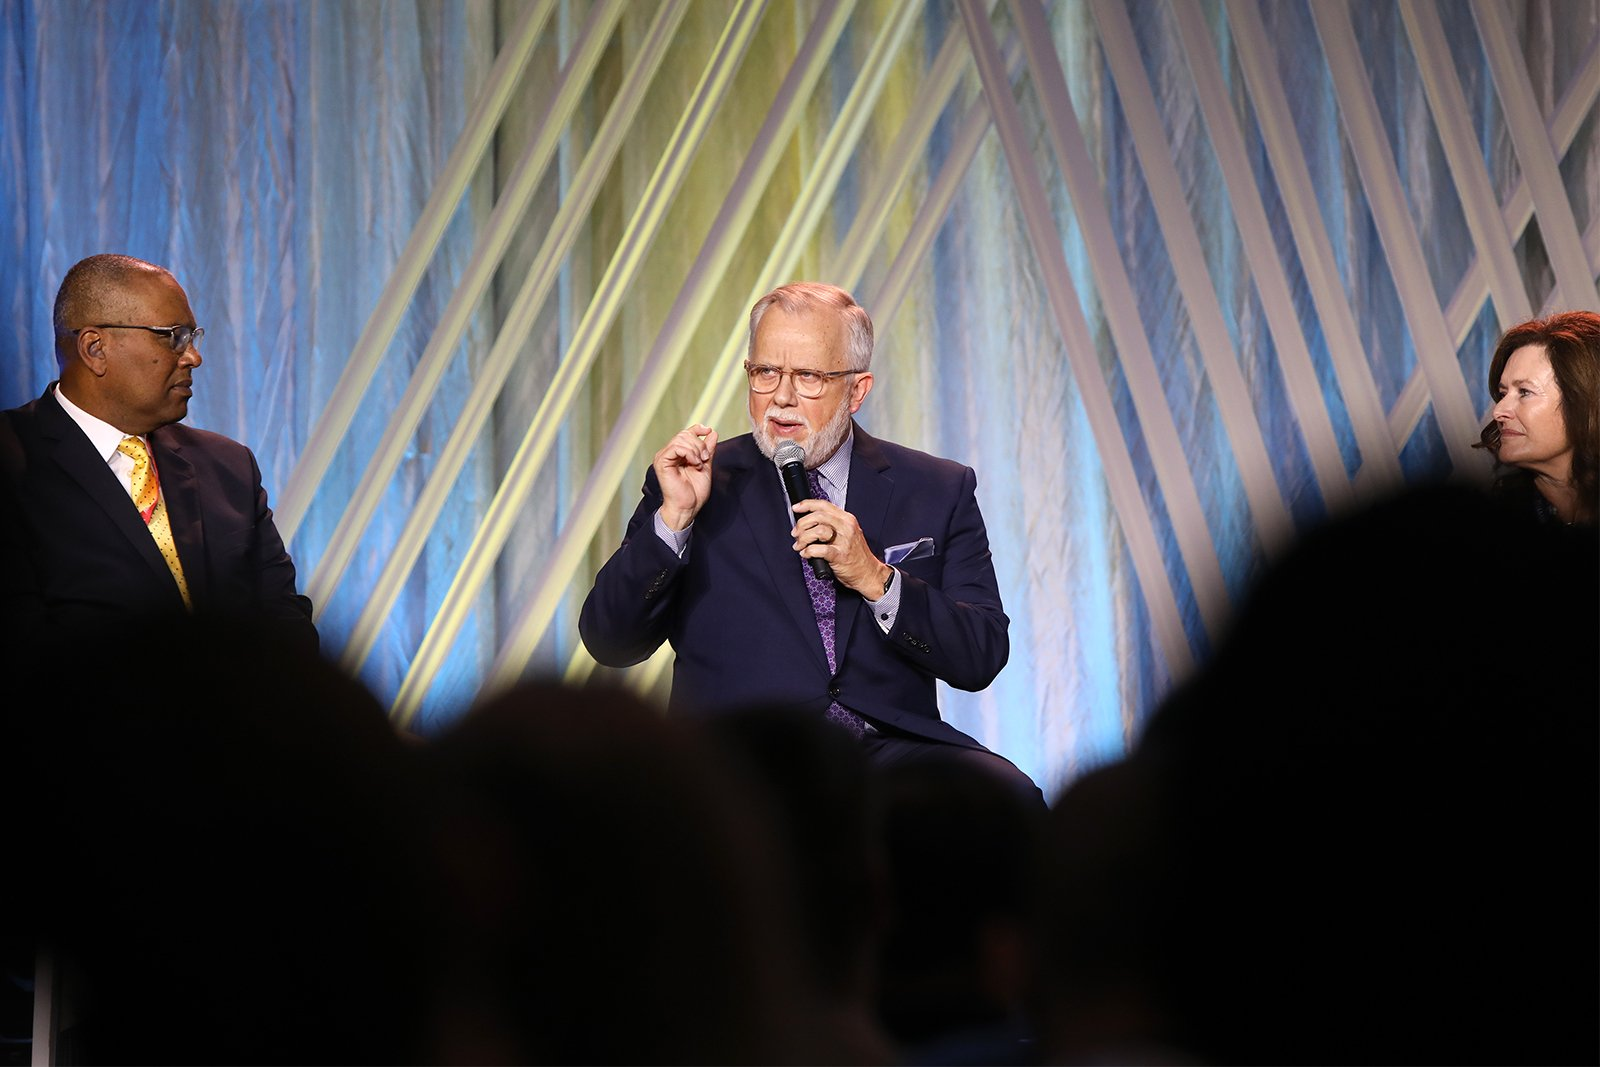 The Rev. Ed Litton, center, participates in a panel during the Southern Baptist Convention annual meeting, Tuesday, June 15, 2021, in Nashville. RNS photo by Kit Doyle